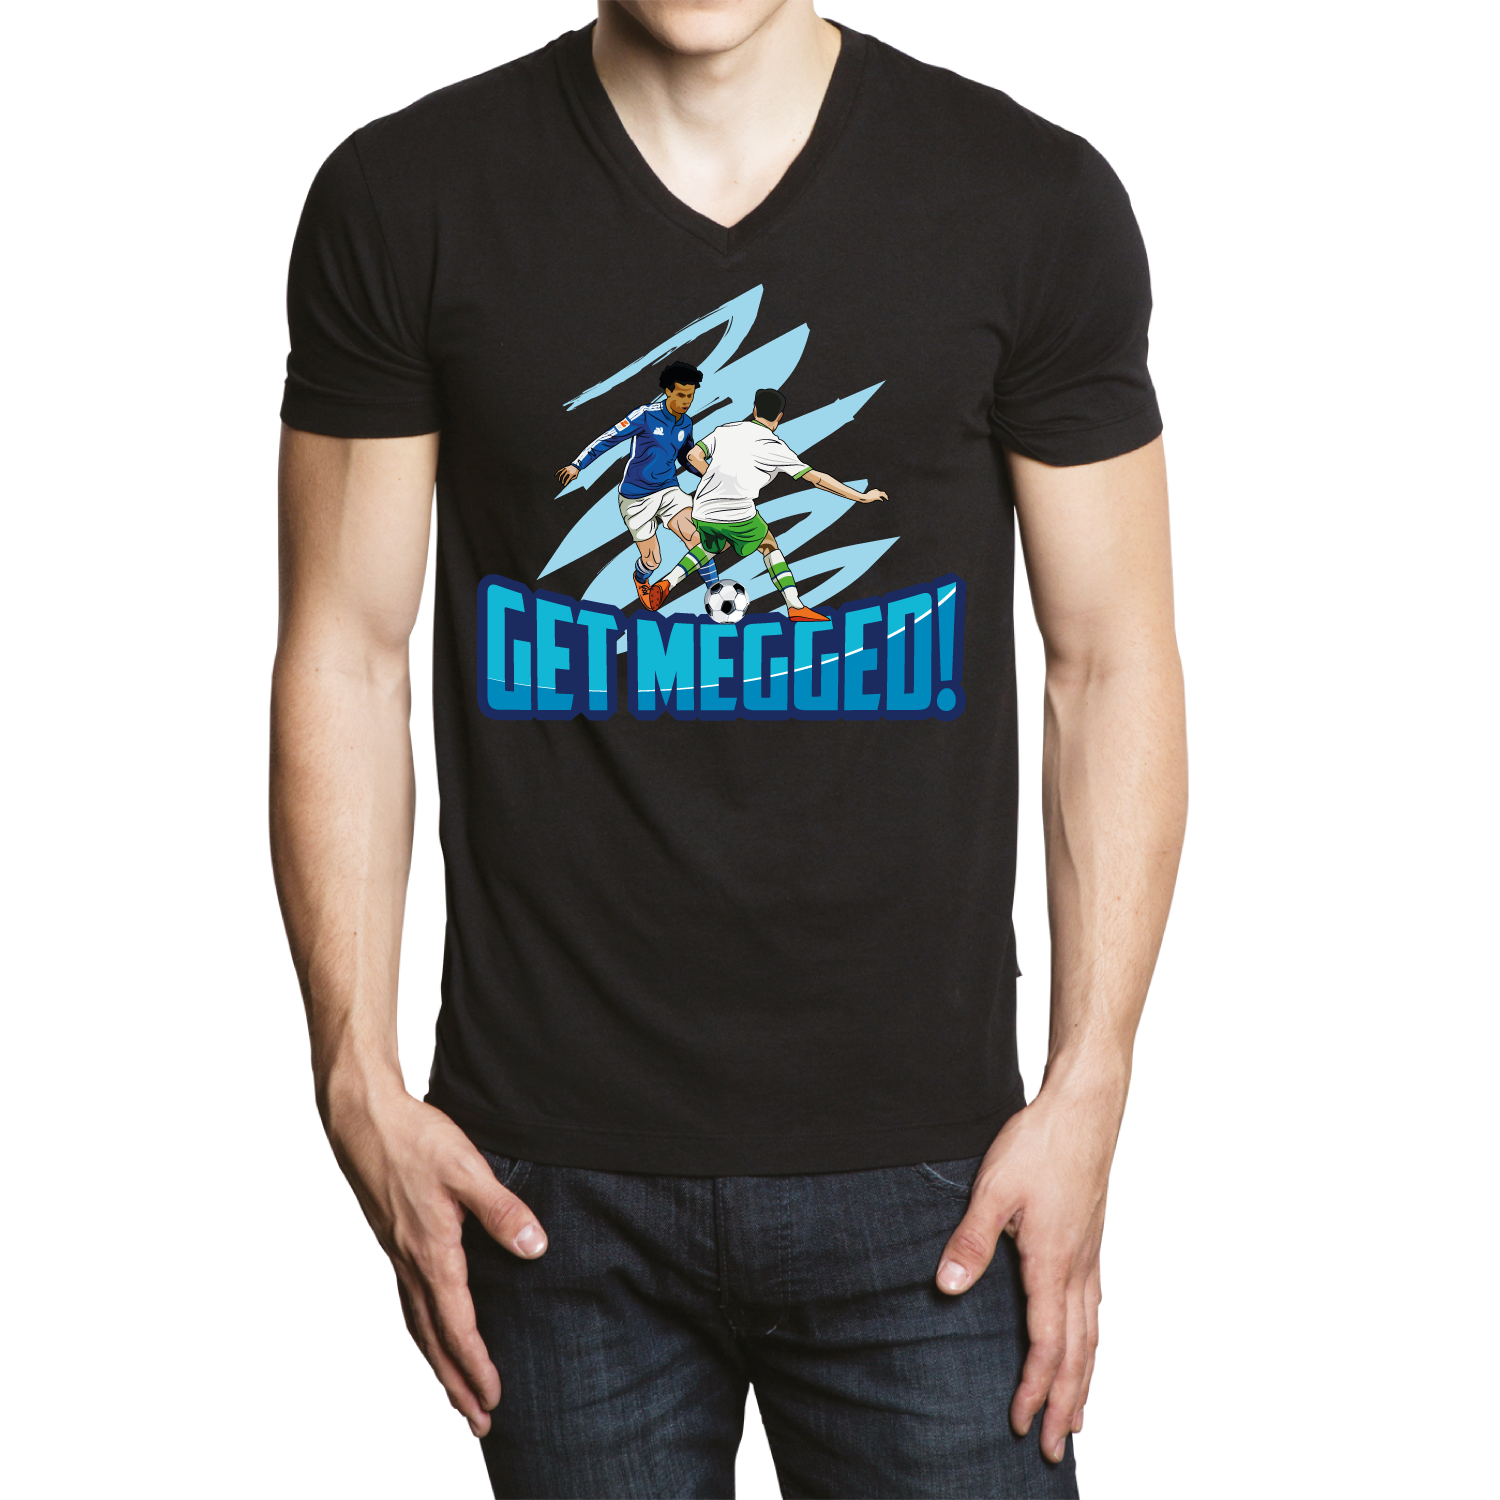 T shirt design for Get Megged! - Sports